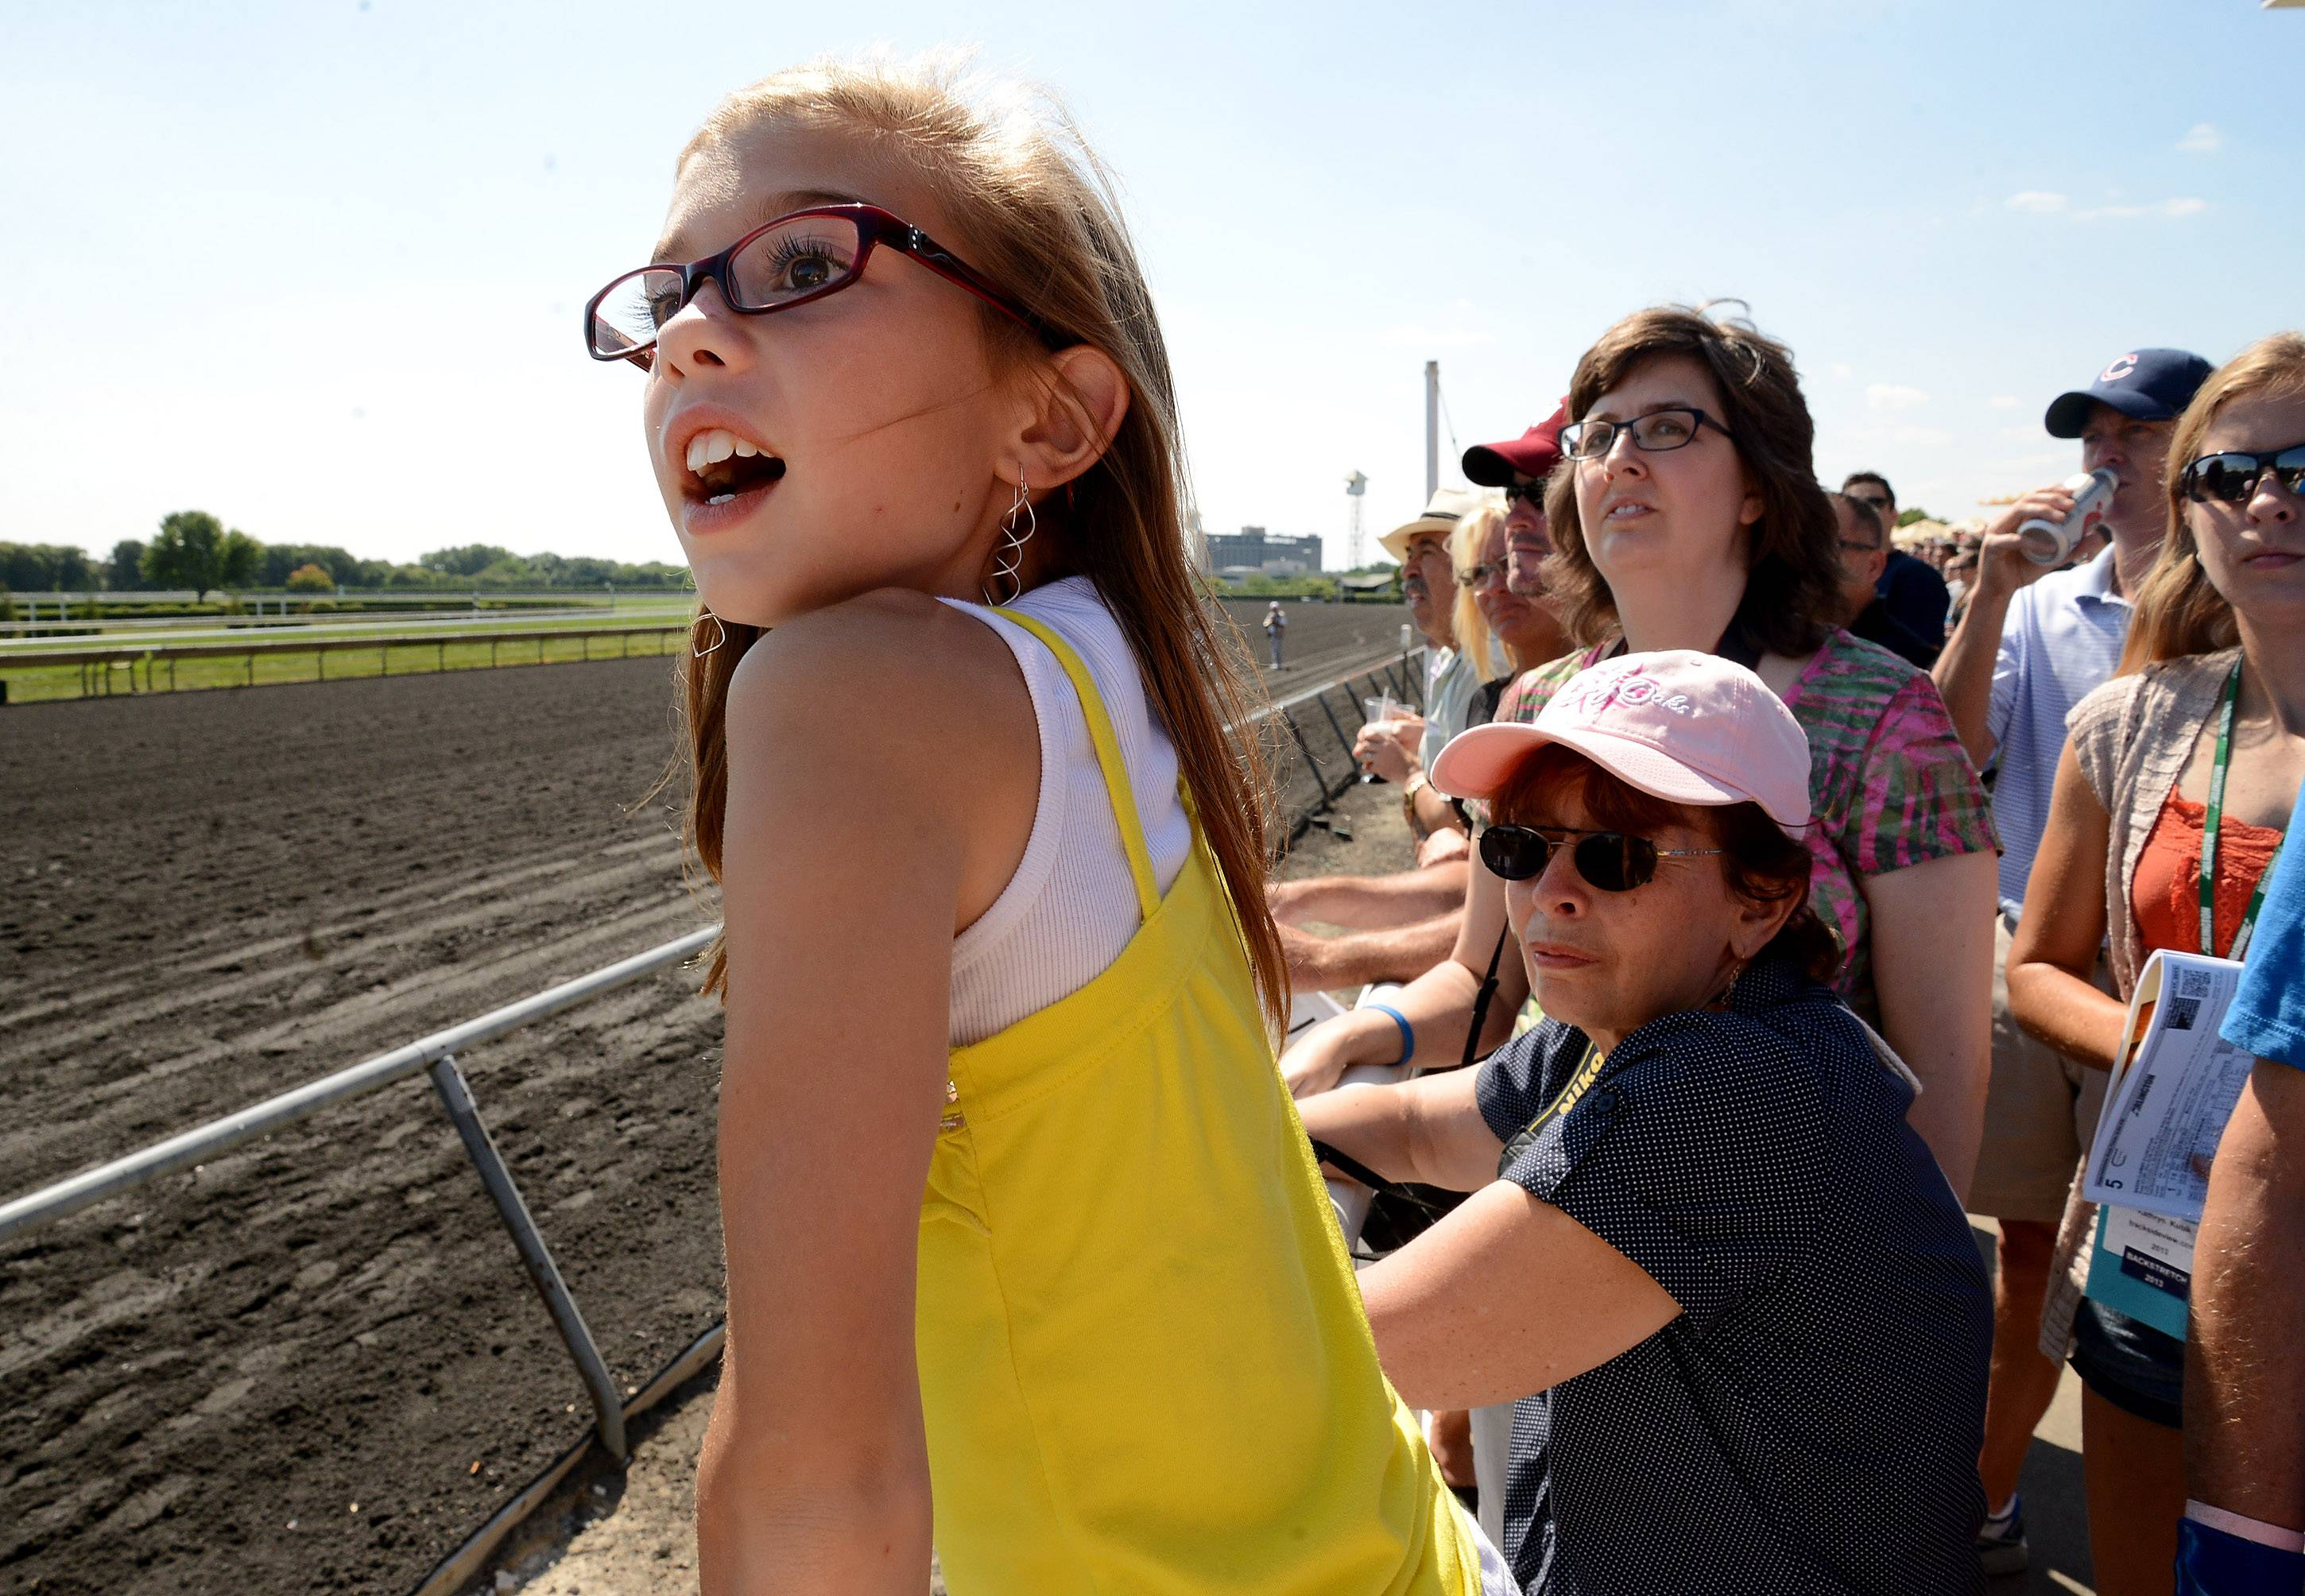 Joanna Brown of Belvidere watches for her horse during the Arlington International Festival of Racing at Arlington International Racecourse.